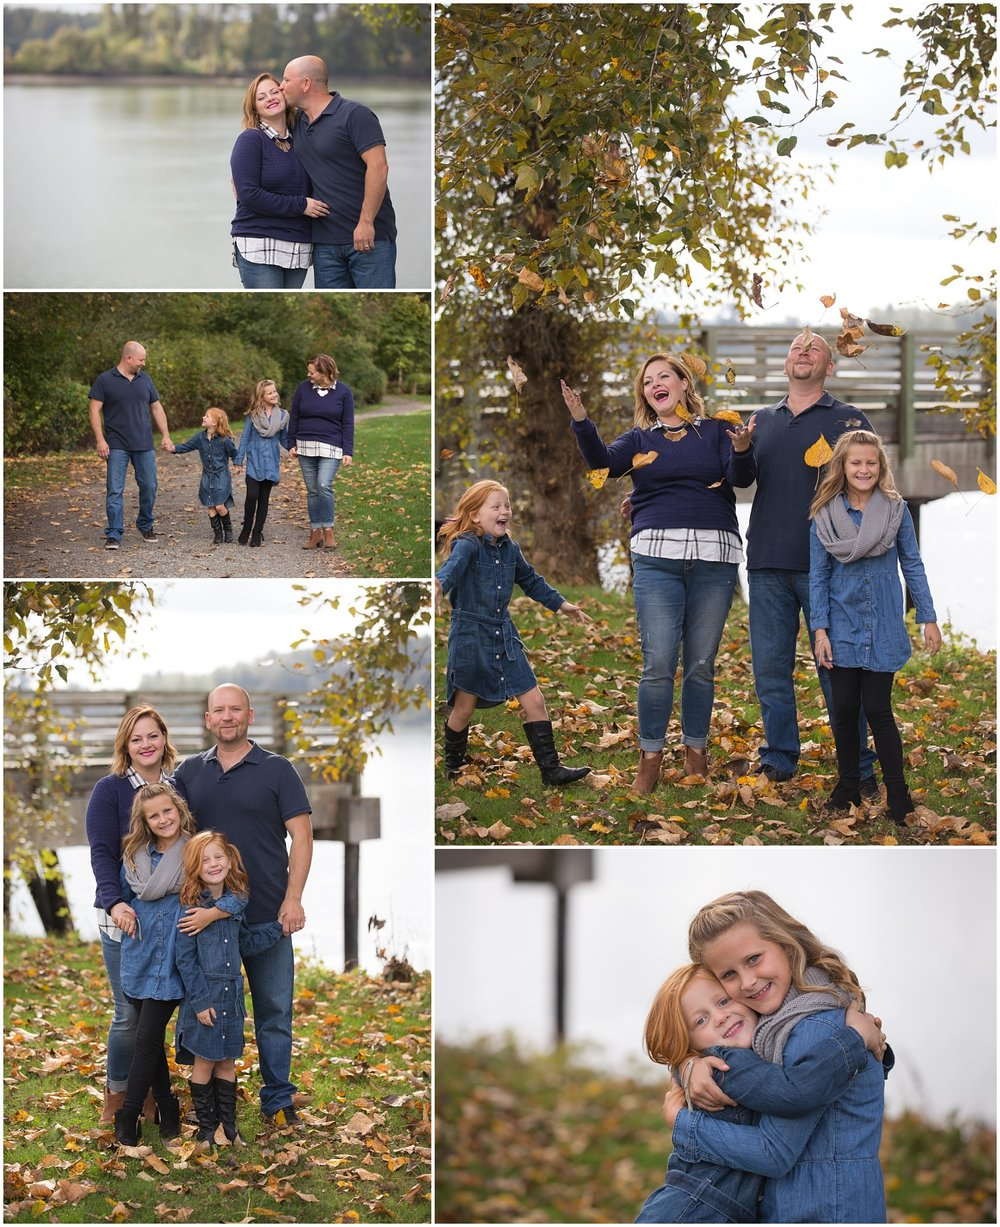 Amazing Day Photography - Fall Mini Sessions - Fall Family Photos - Langley Family Photographer (4).jpg